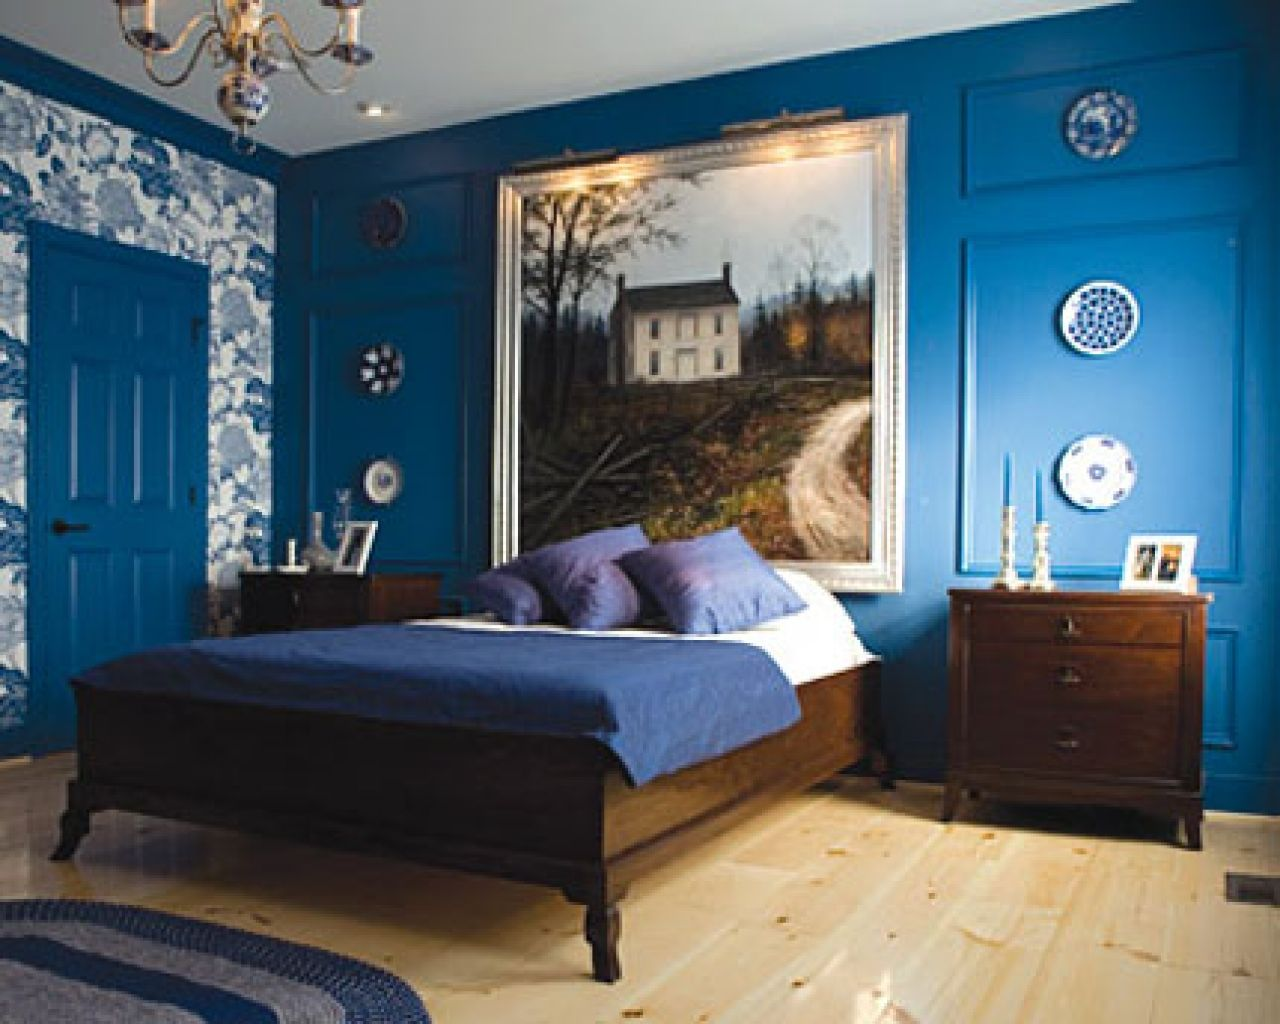 Bedroom painting design ideas pretty natural bedroom paint How to design your bedroom wall